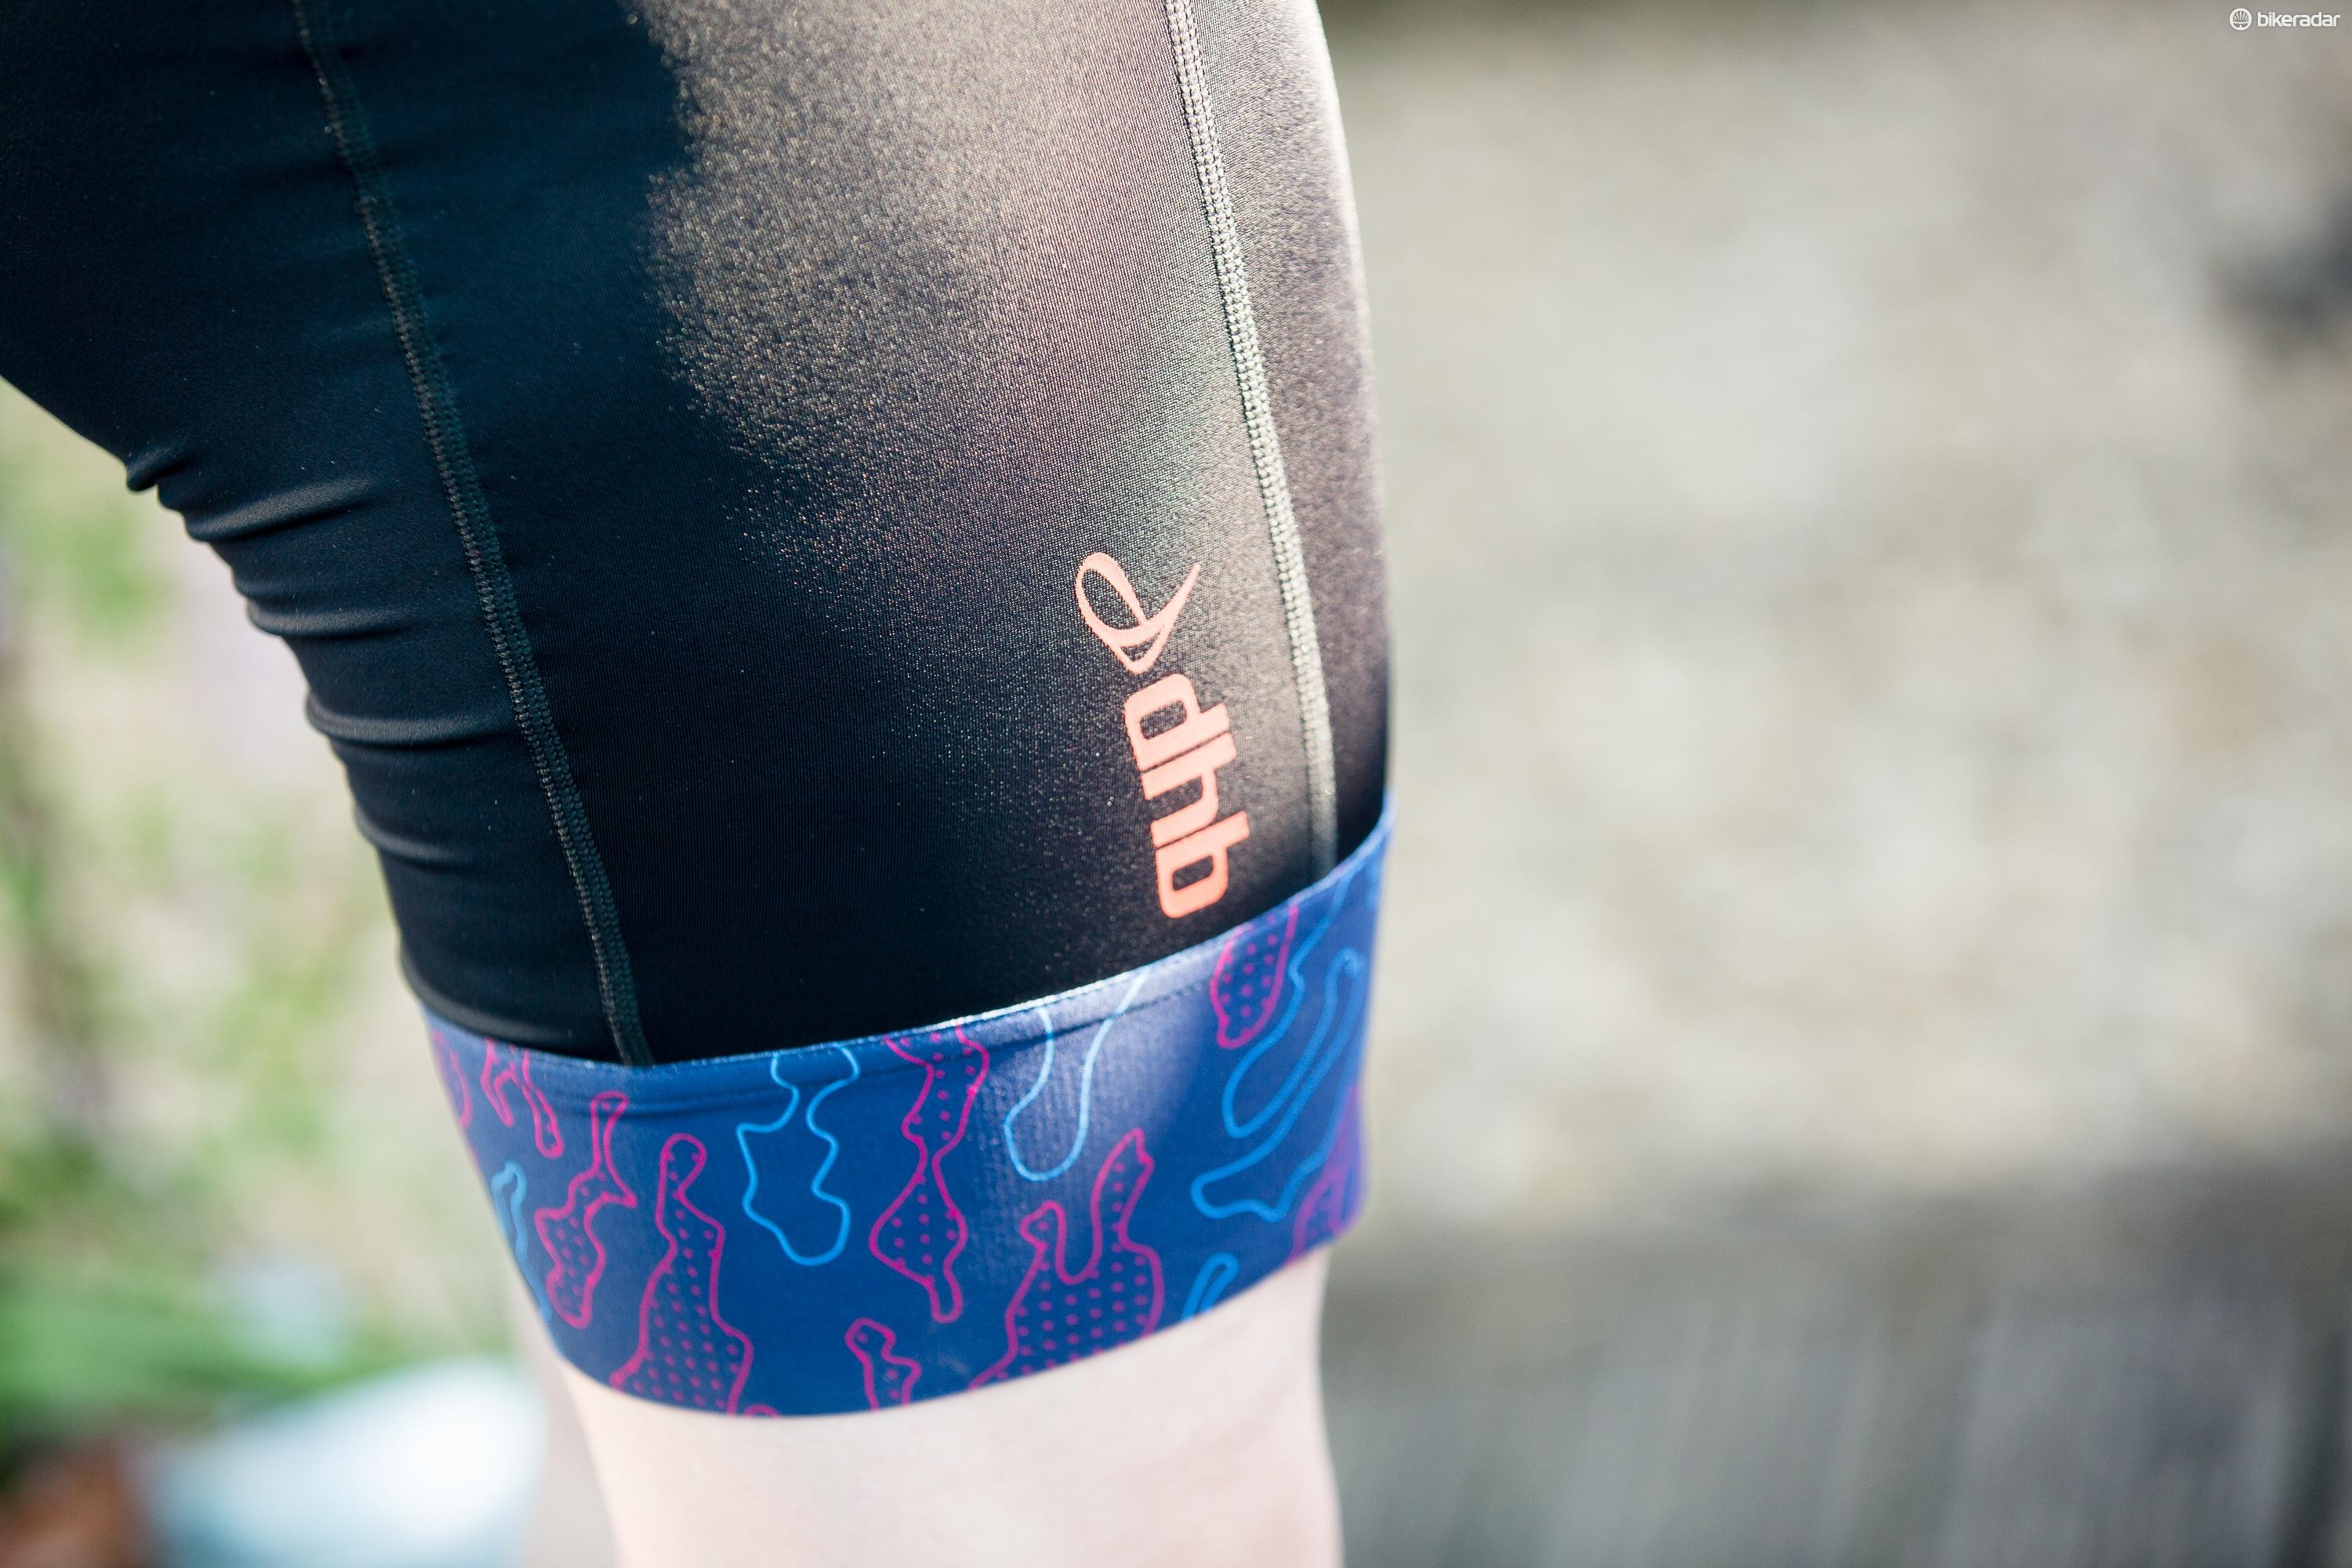 The sillicone leg grippers are comfortable and fitted well